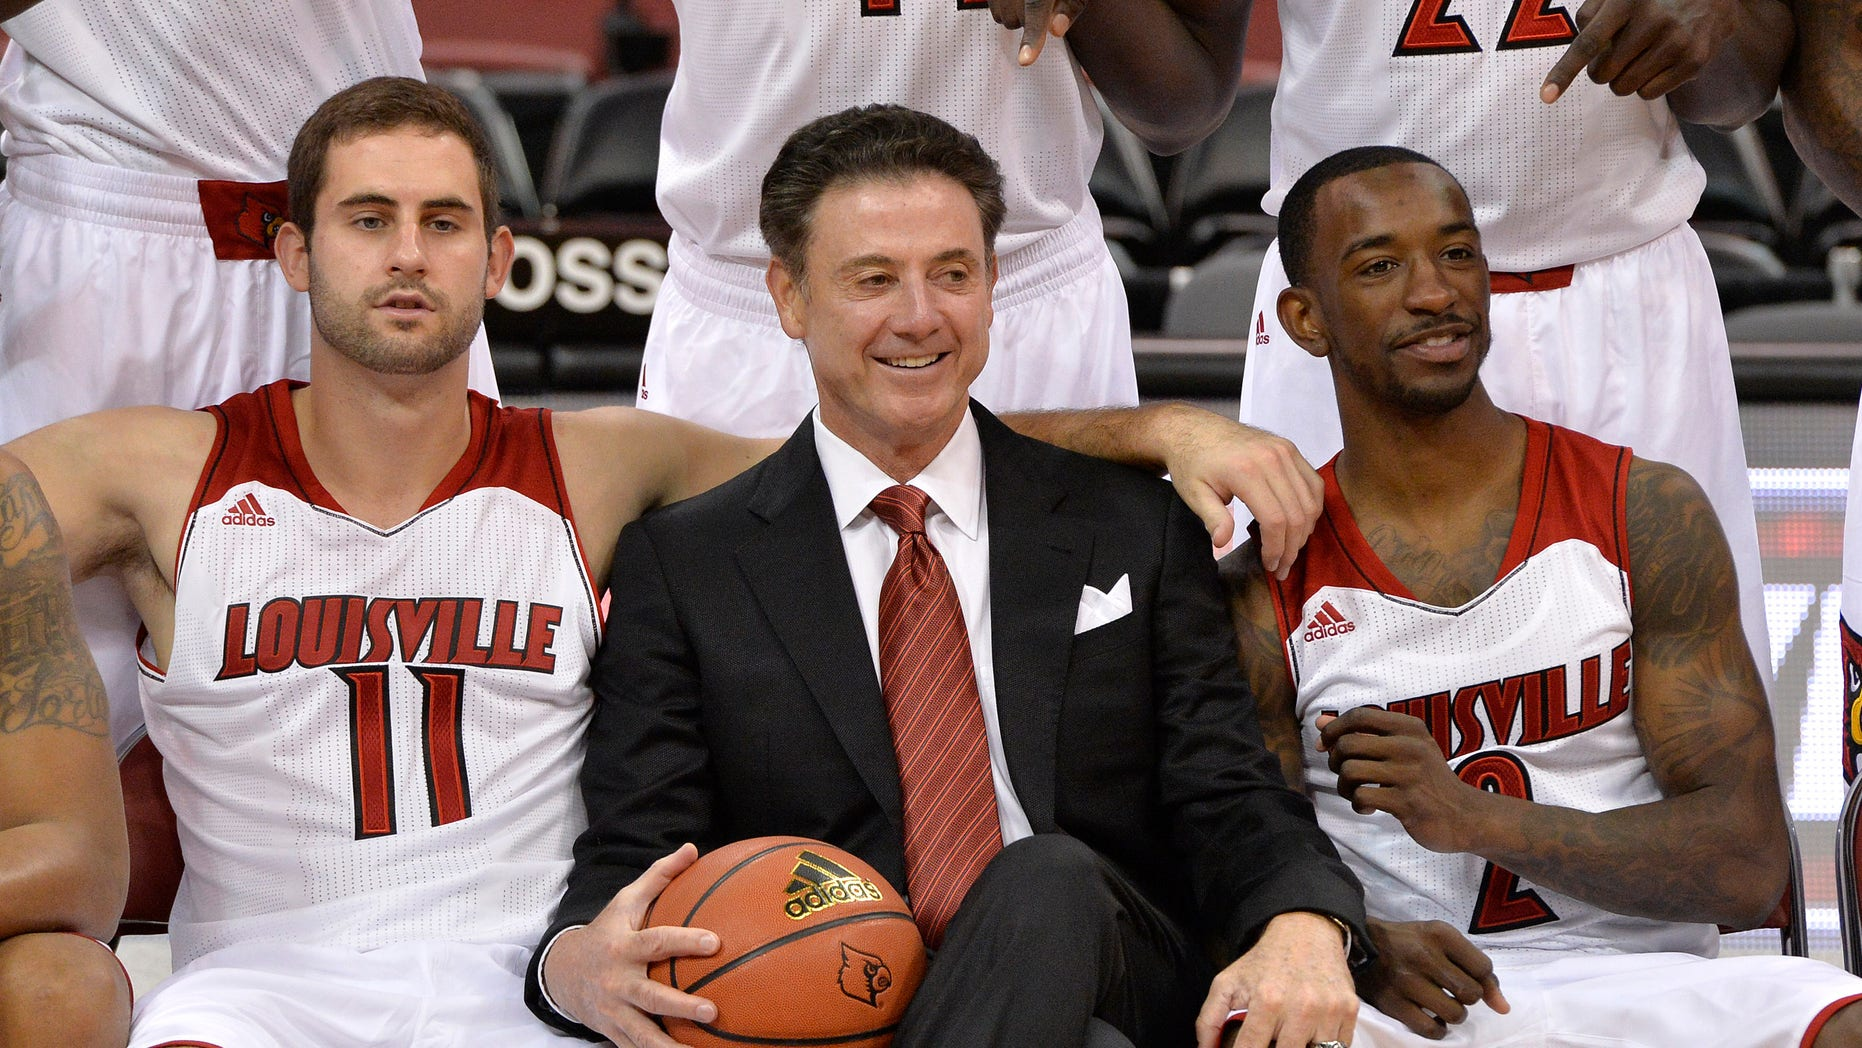 Louisville's Luke Hancock, left, head coach Rick Pitino, center, and Russ Smith pose for the cameras during NCAA college basketball media day, Saturday, Oct. 12, 2013, in Louisville, Ky. (AP Photo/Timothy D. Easley)